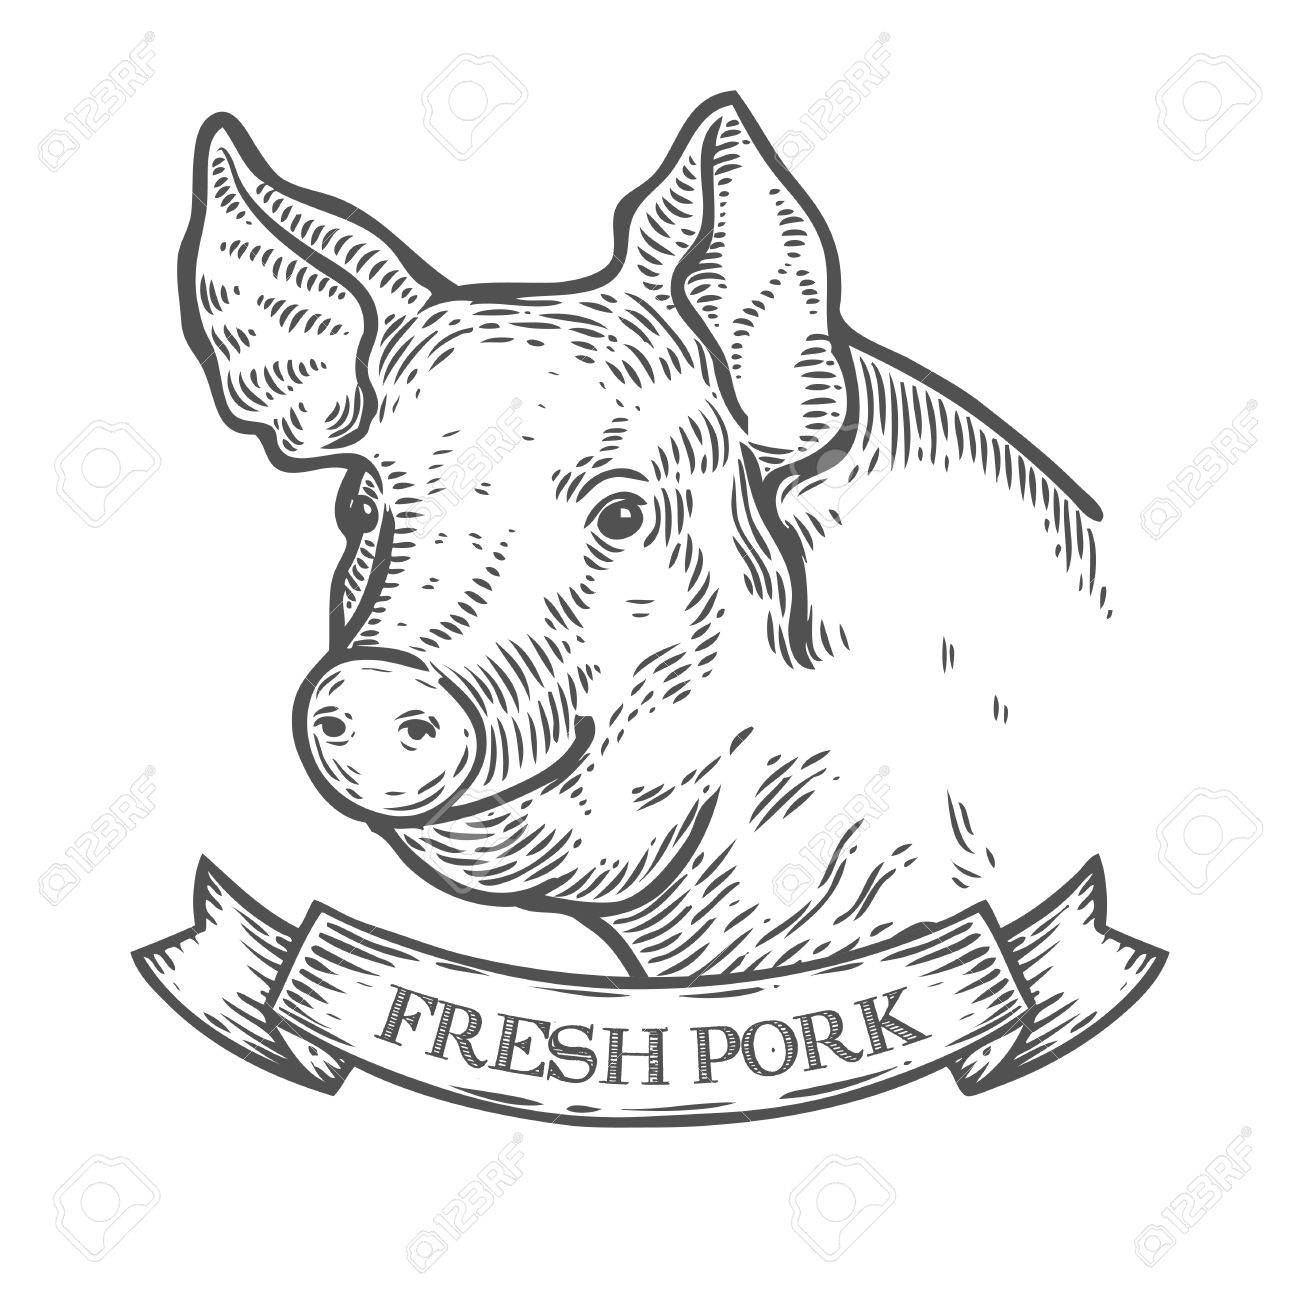 Pork Drawing At Getdrawings